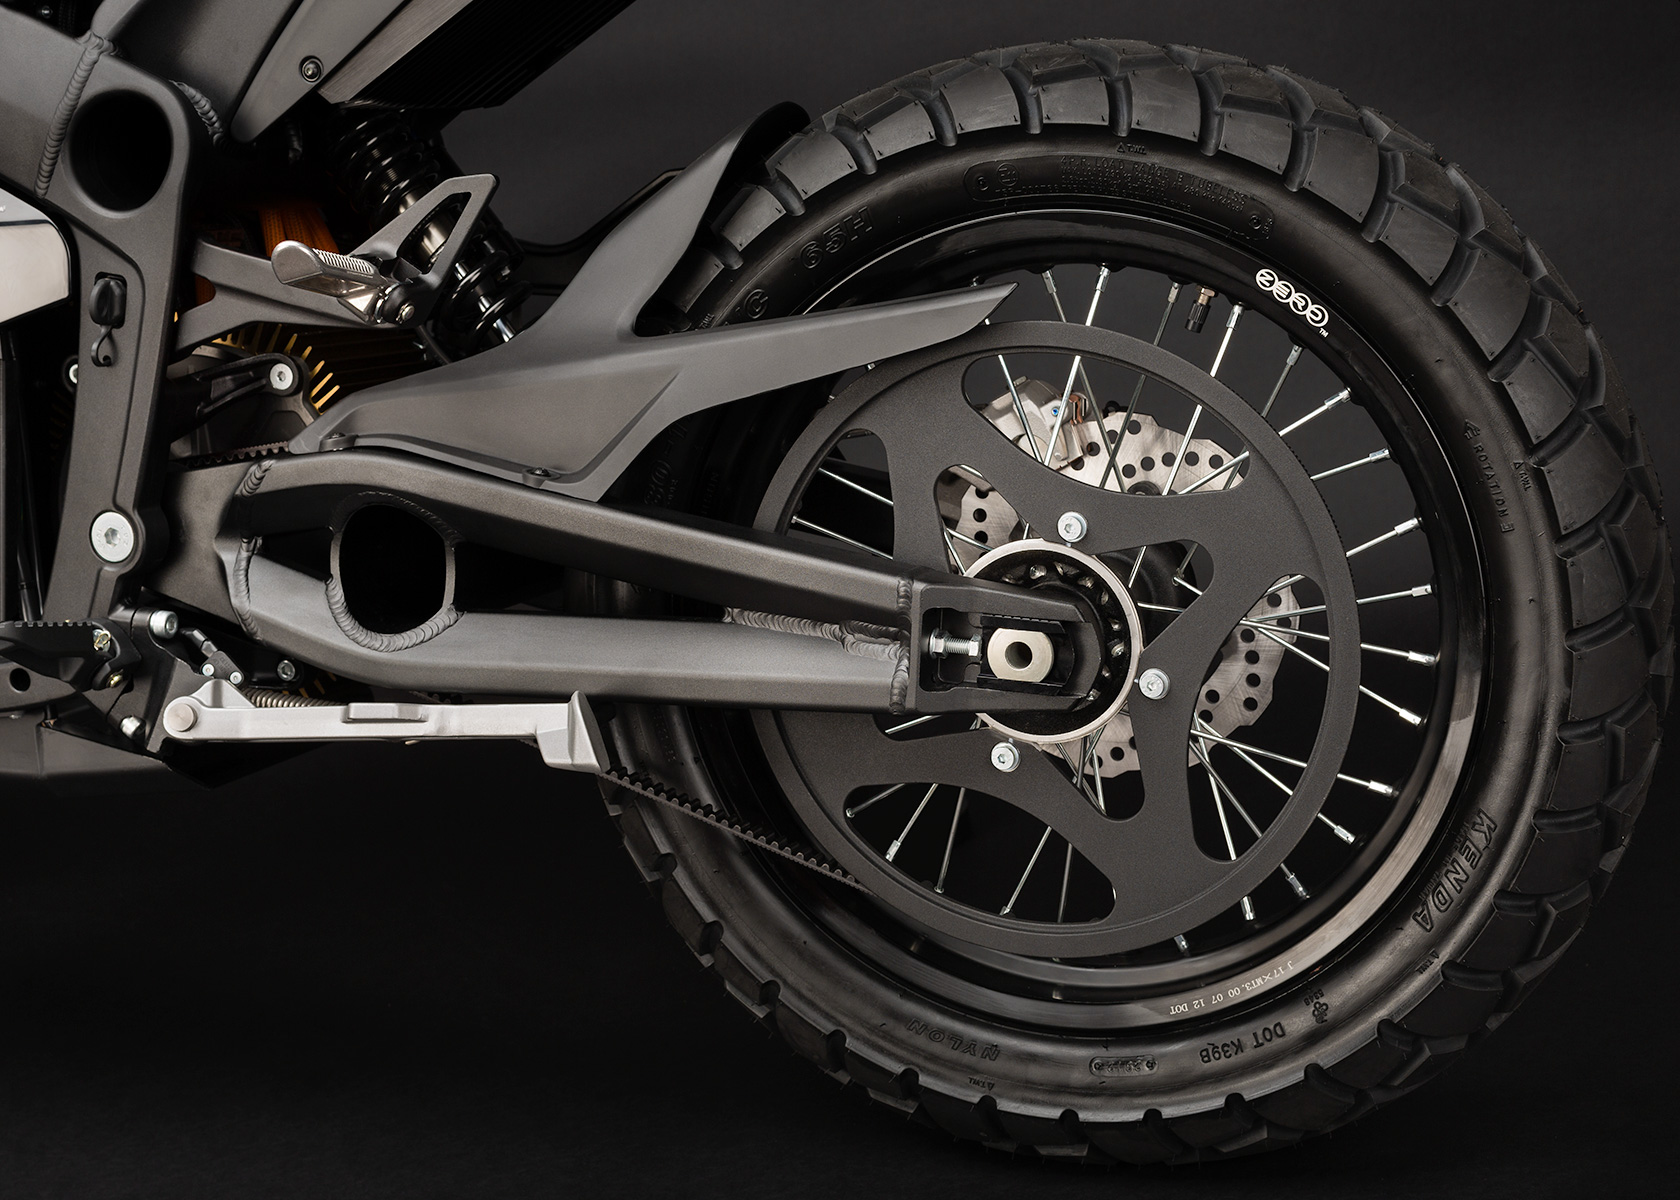 2013 Zero DS Electric Motorcycle: Belt Drive